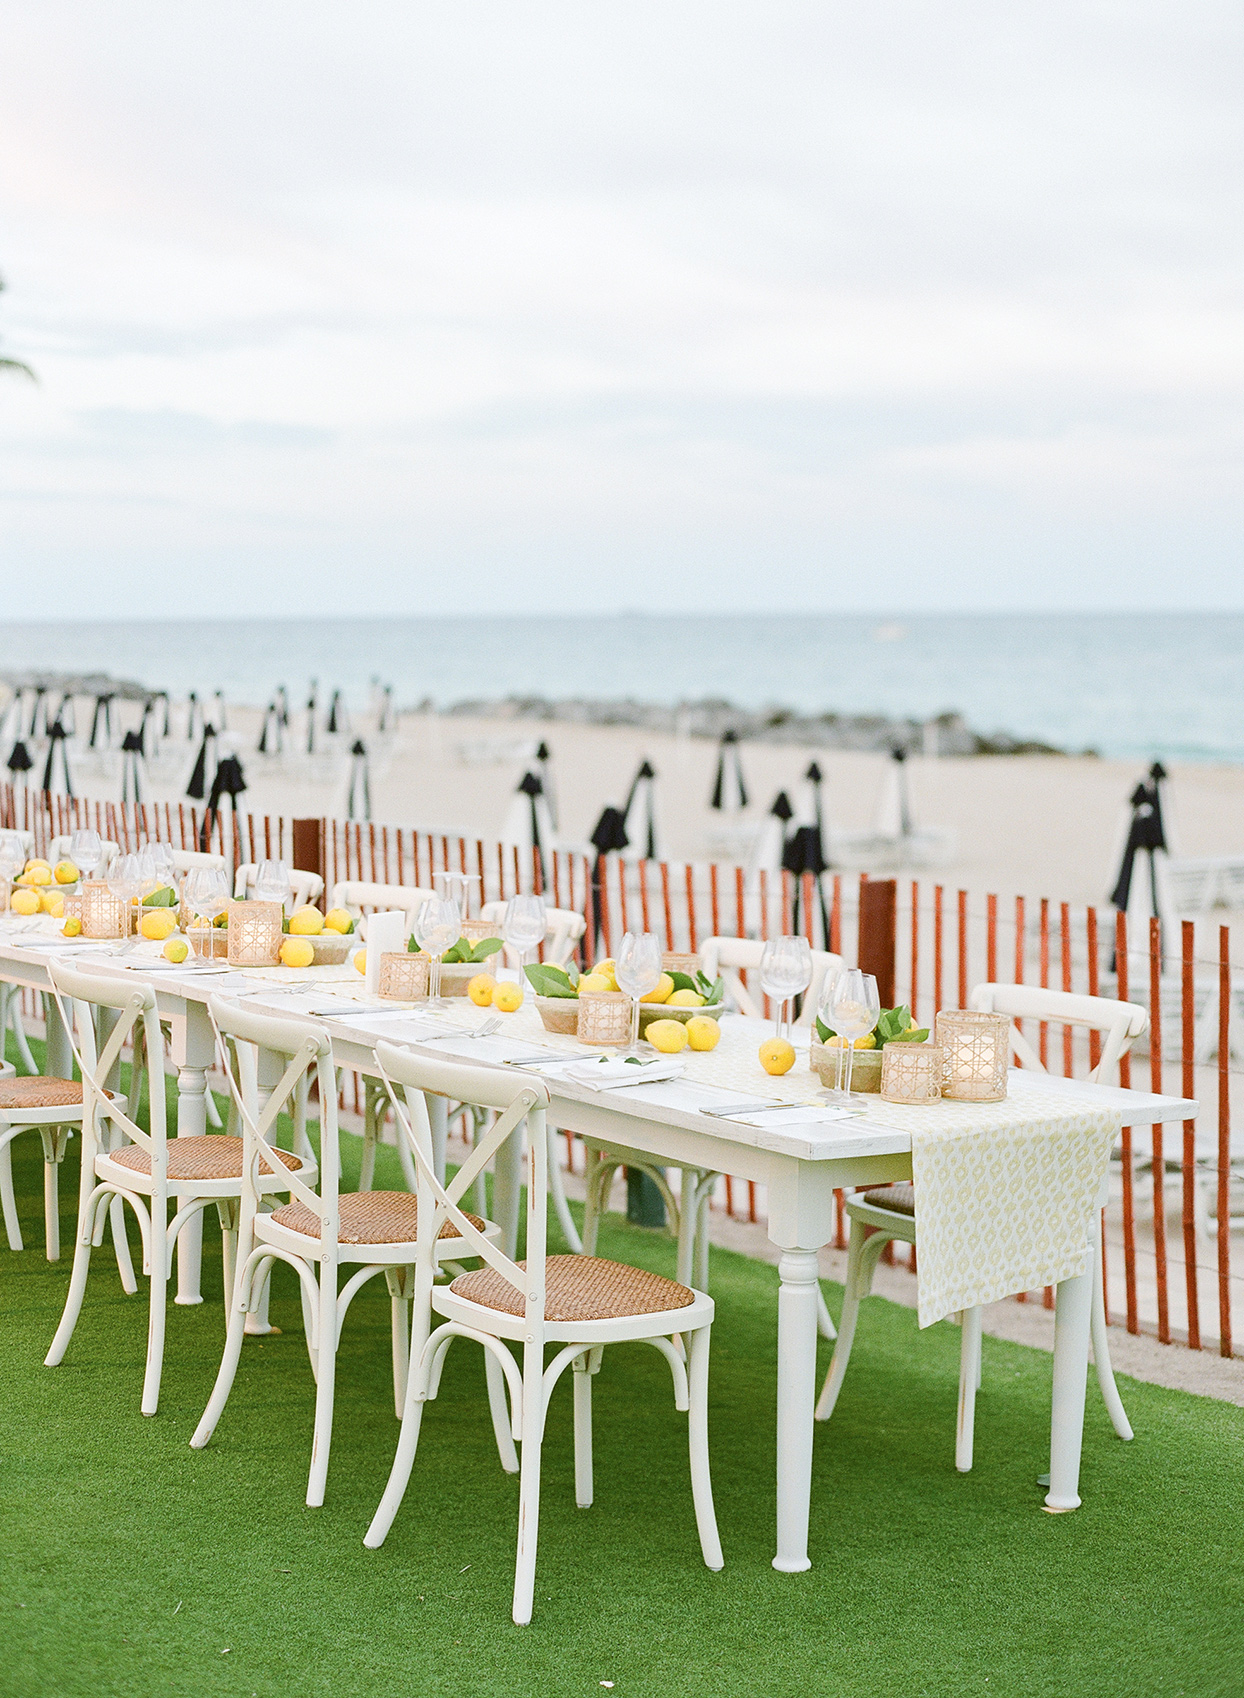 wedding rehearsal dinner table set up by the beach